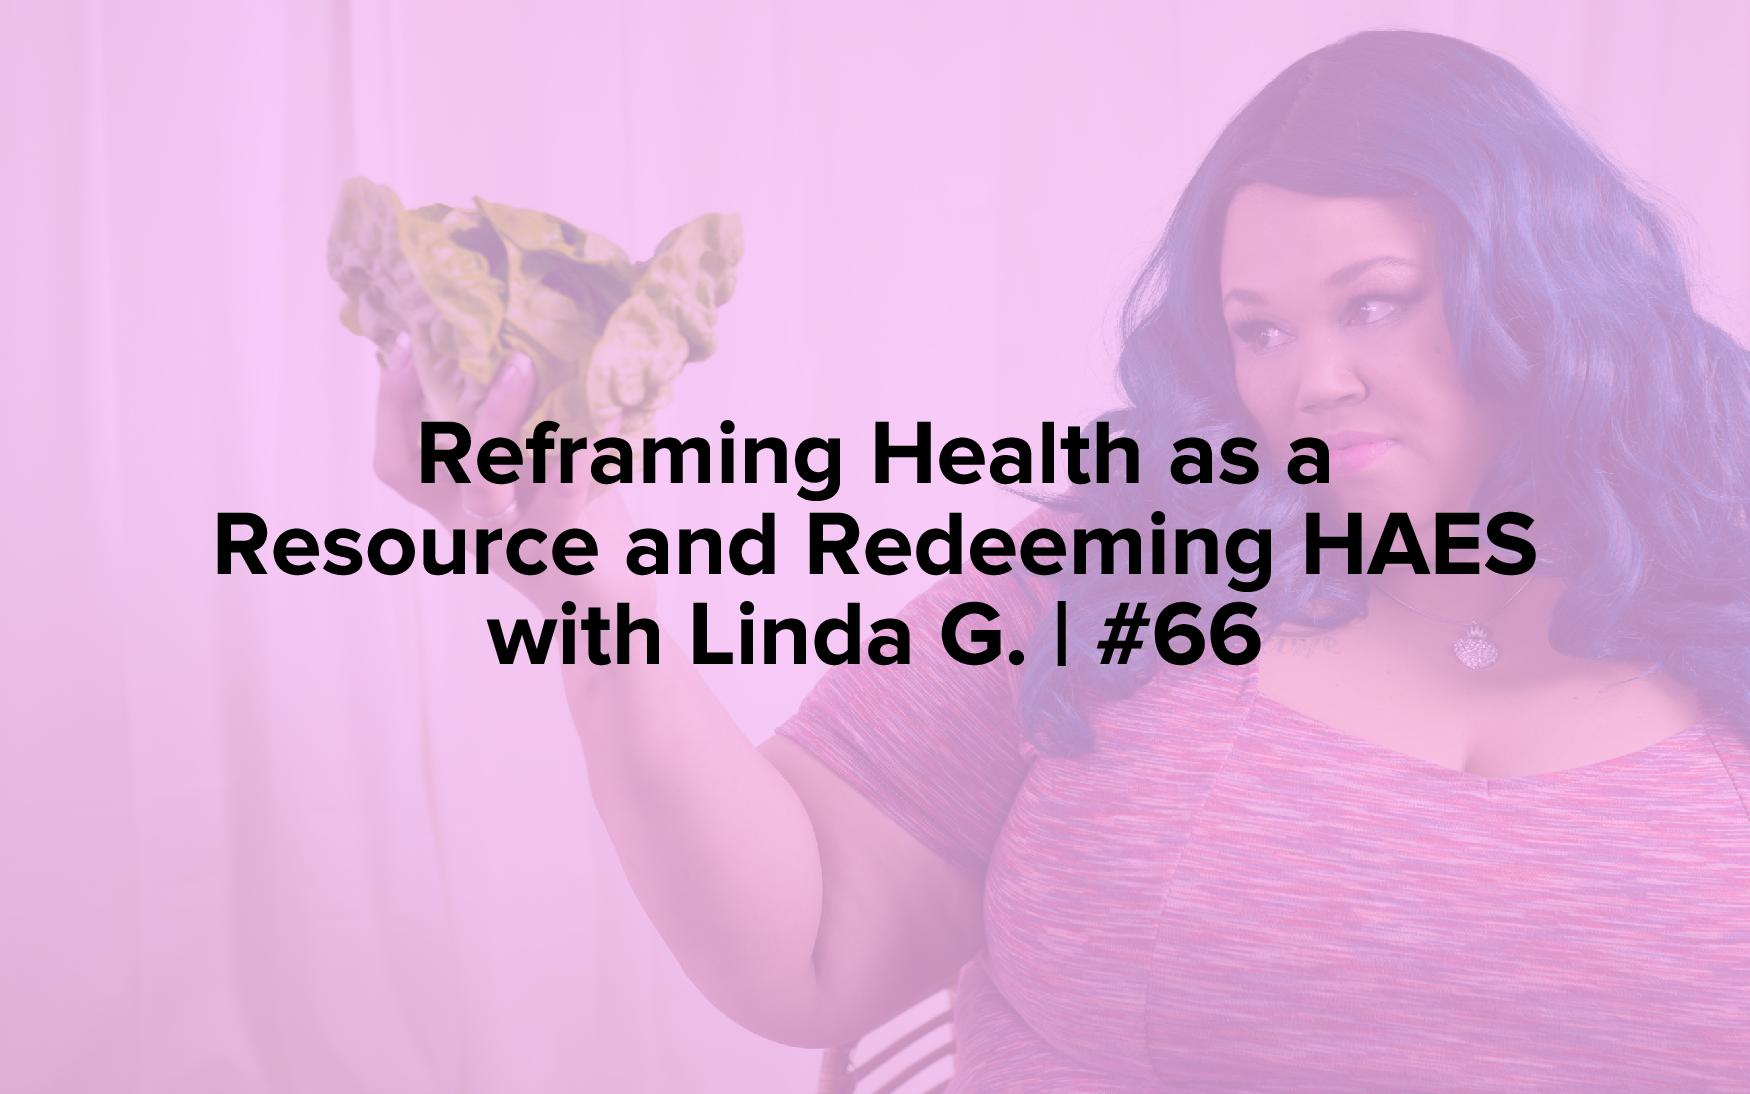 Reframing Health as a Resource and Redeeming HAES with Linda G. | #66